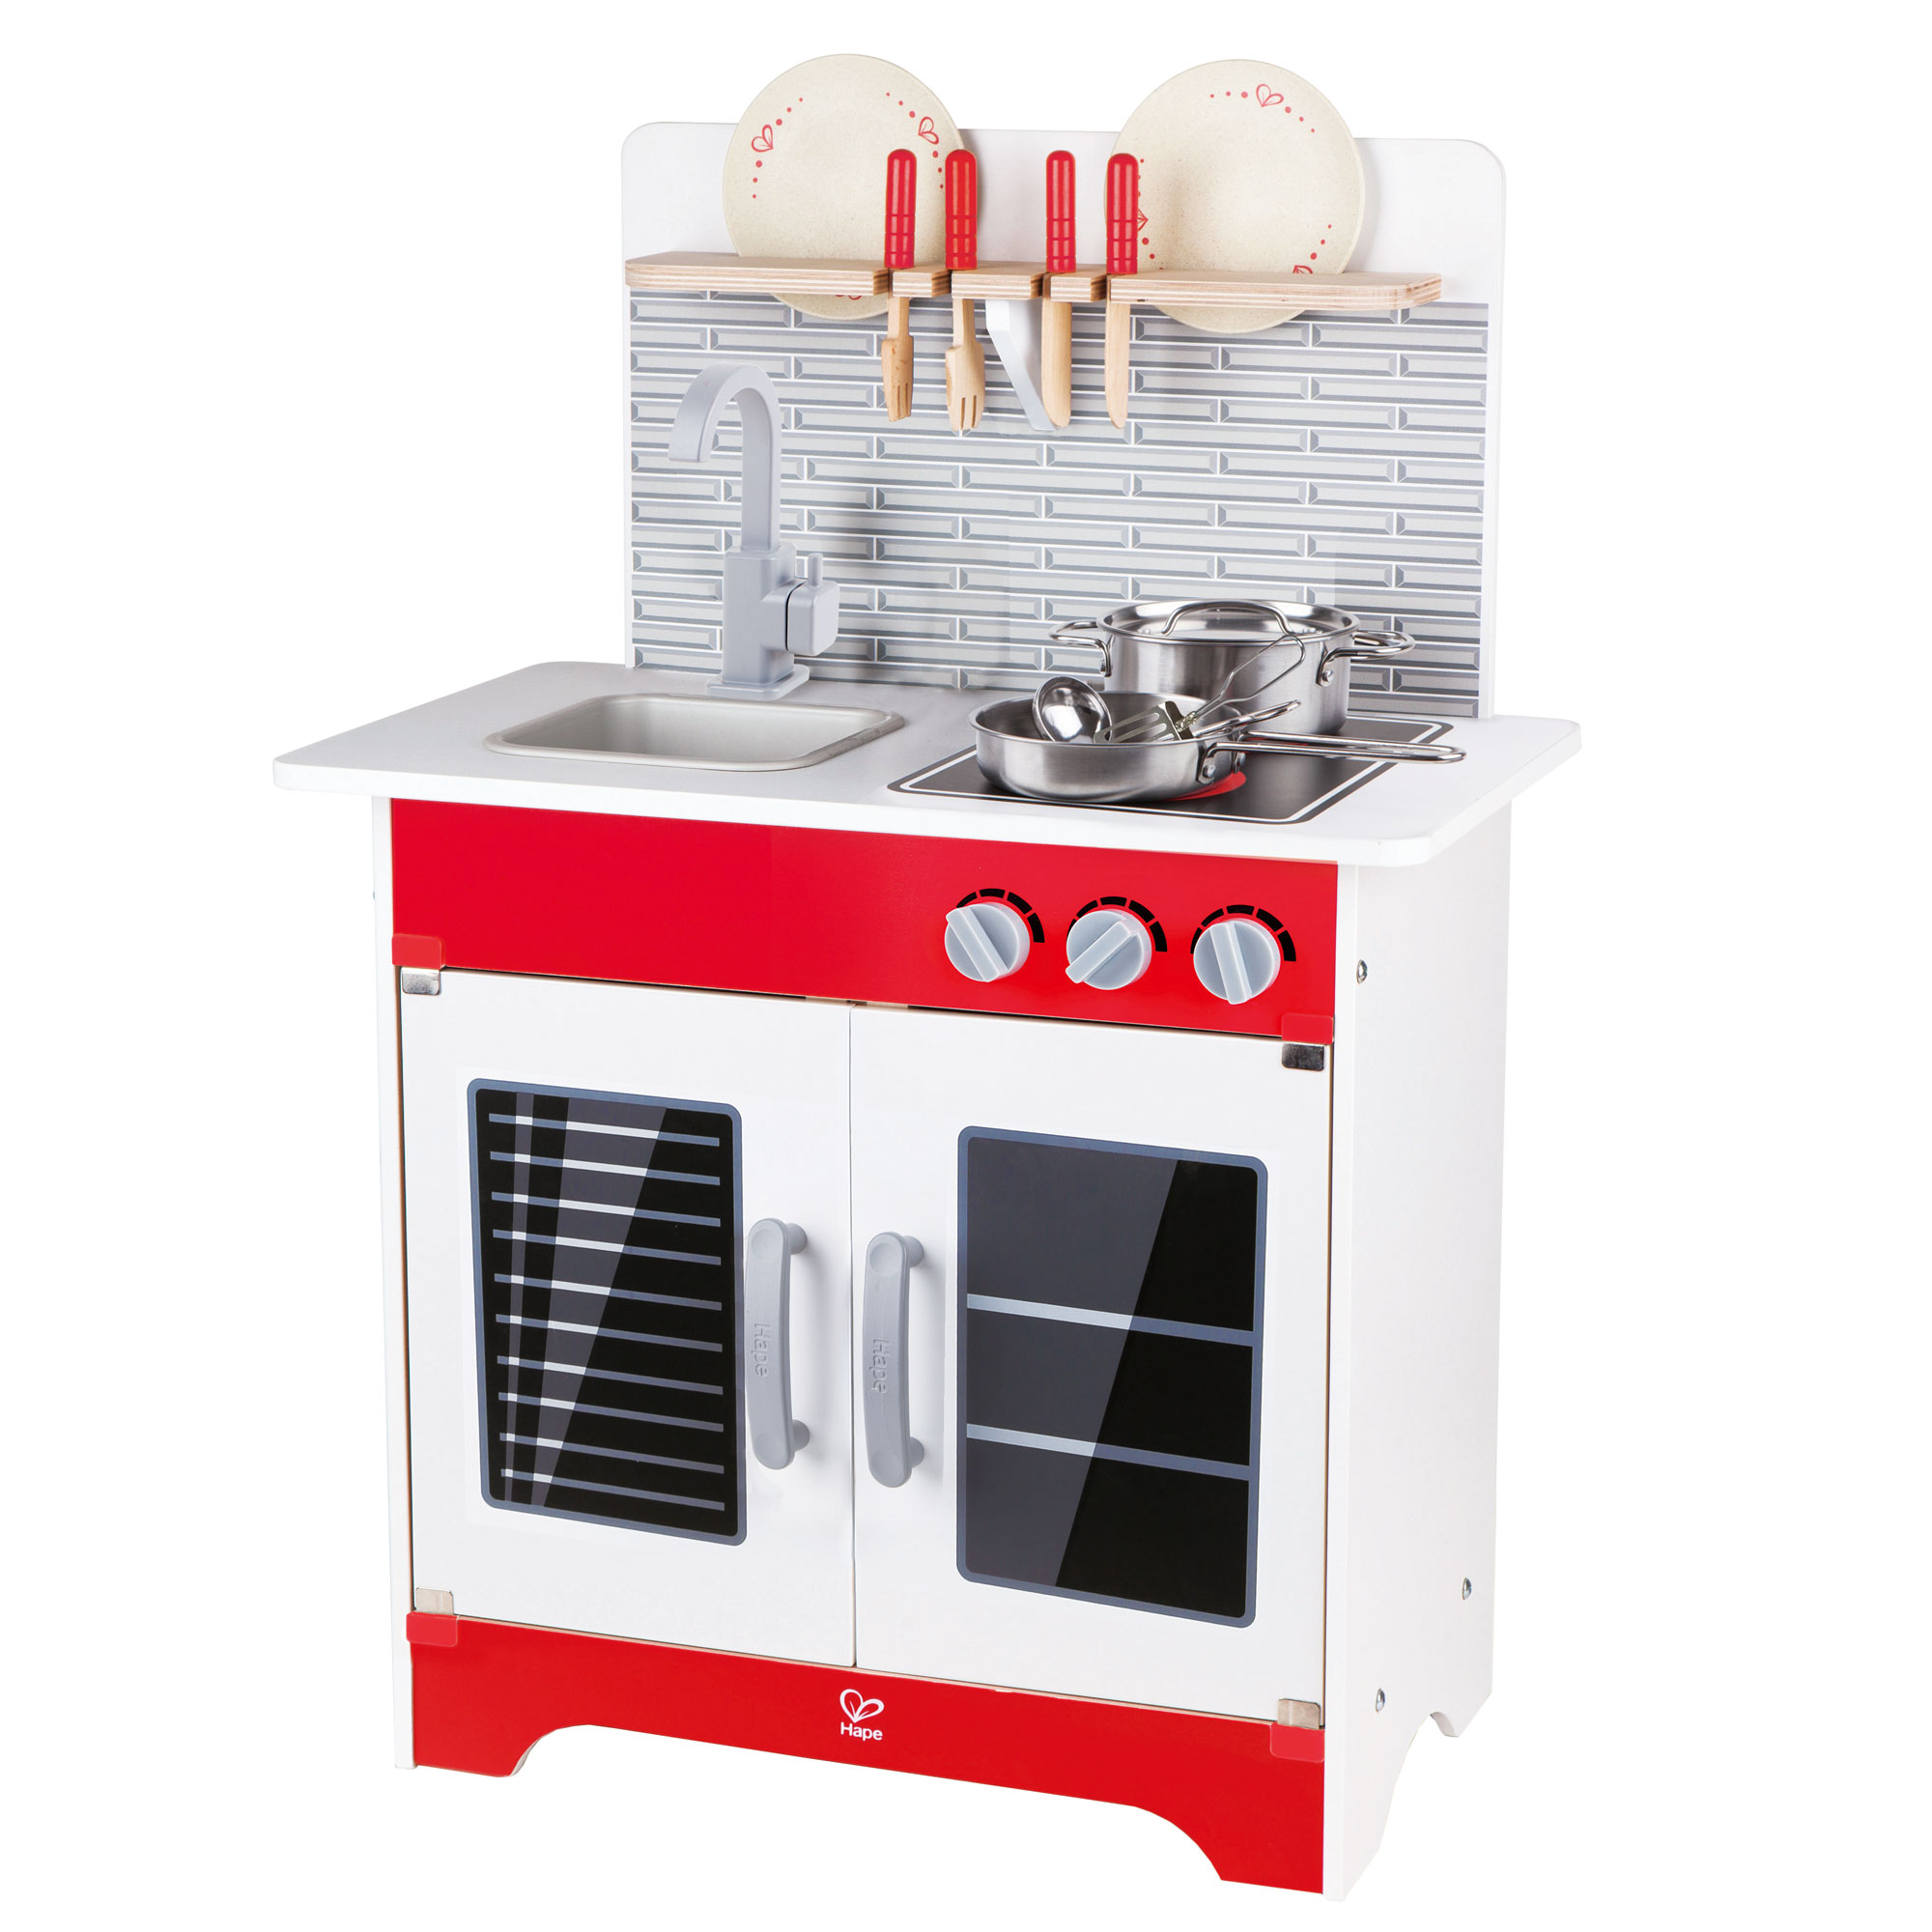 Hape wooden city cafe pretend cooking play kitchen set kids toddler toy playset